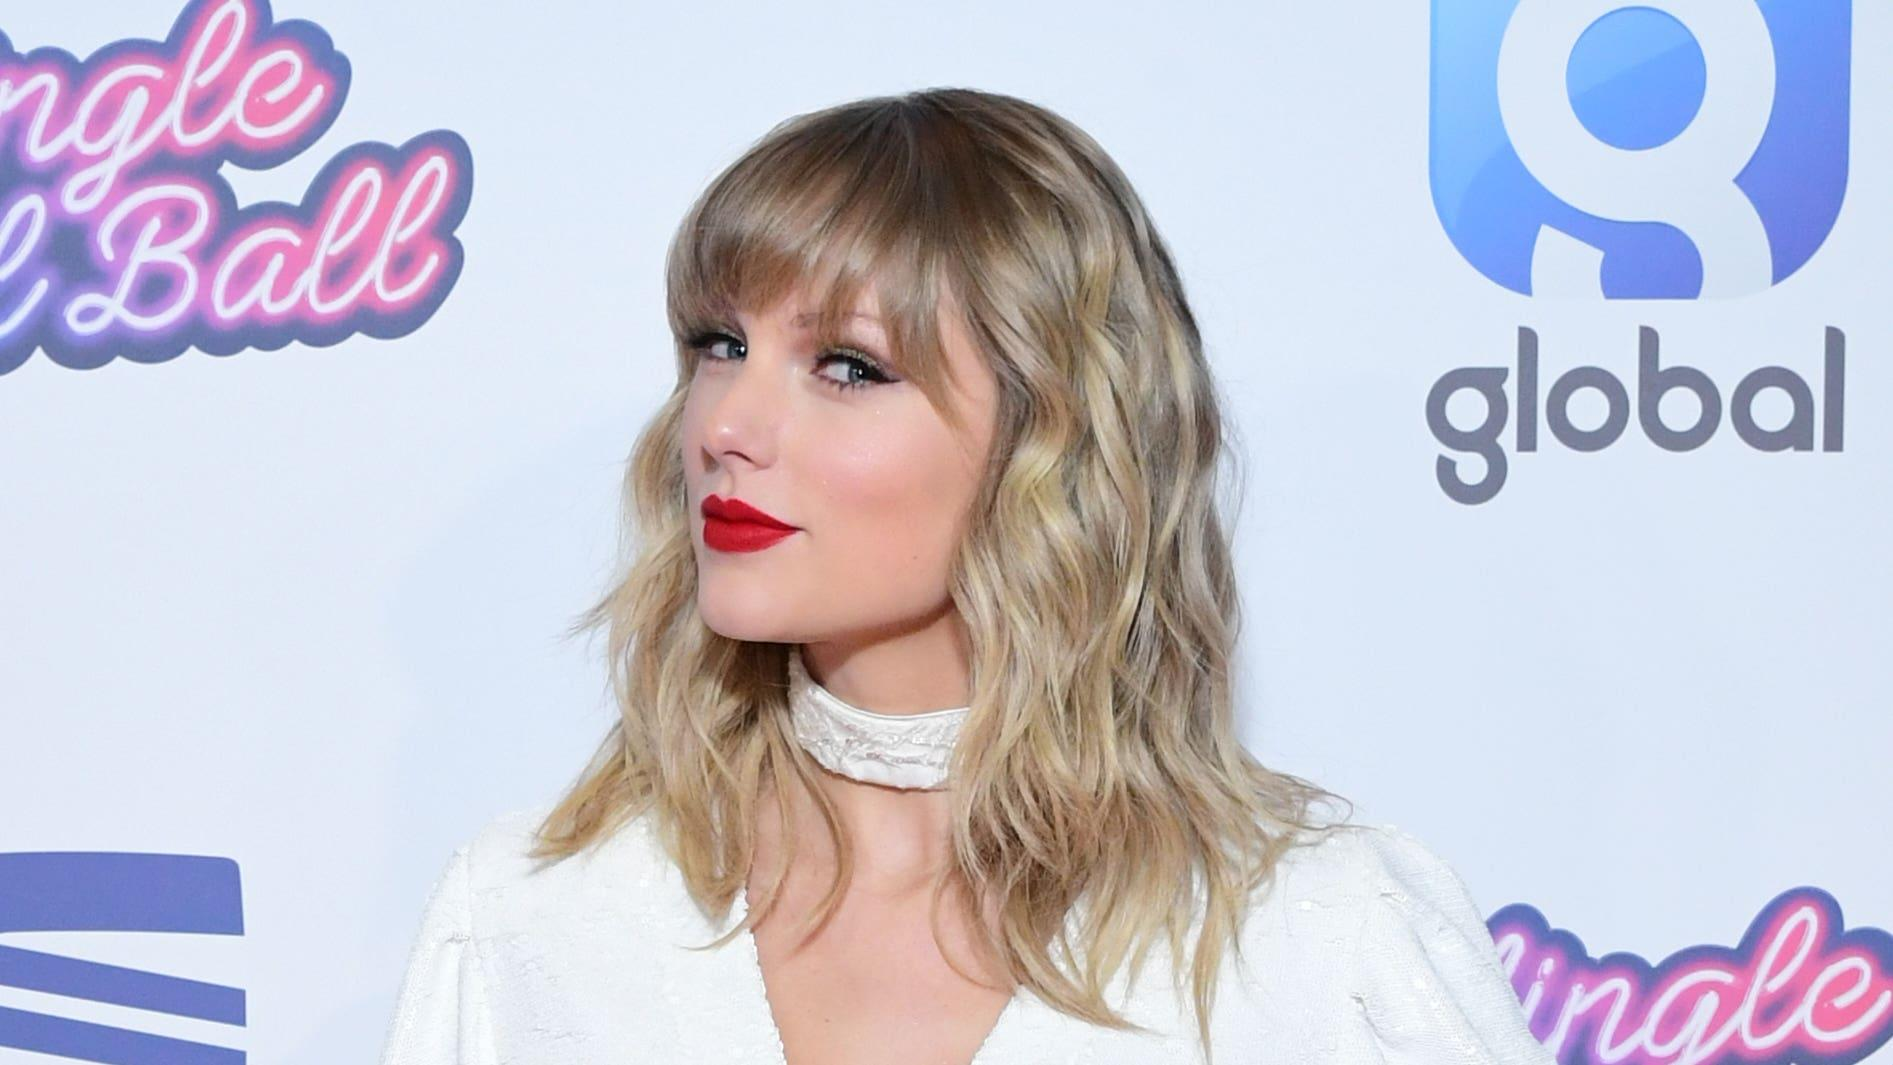 Taylor Swift releases first re-recorded album Fearless